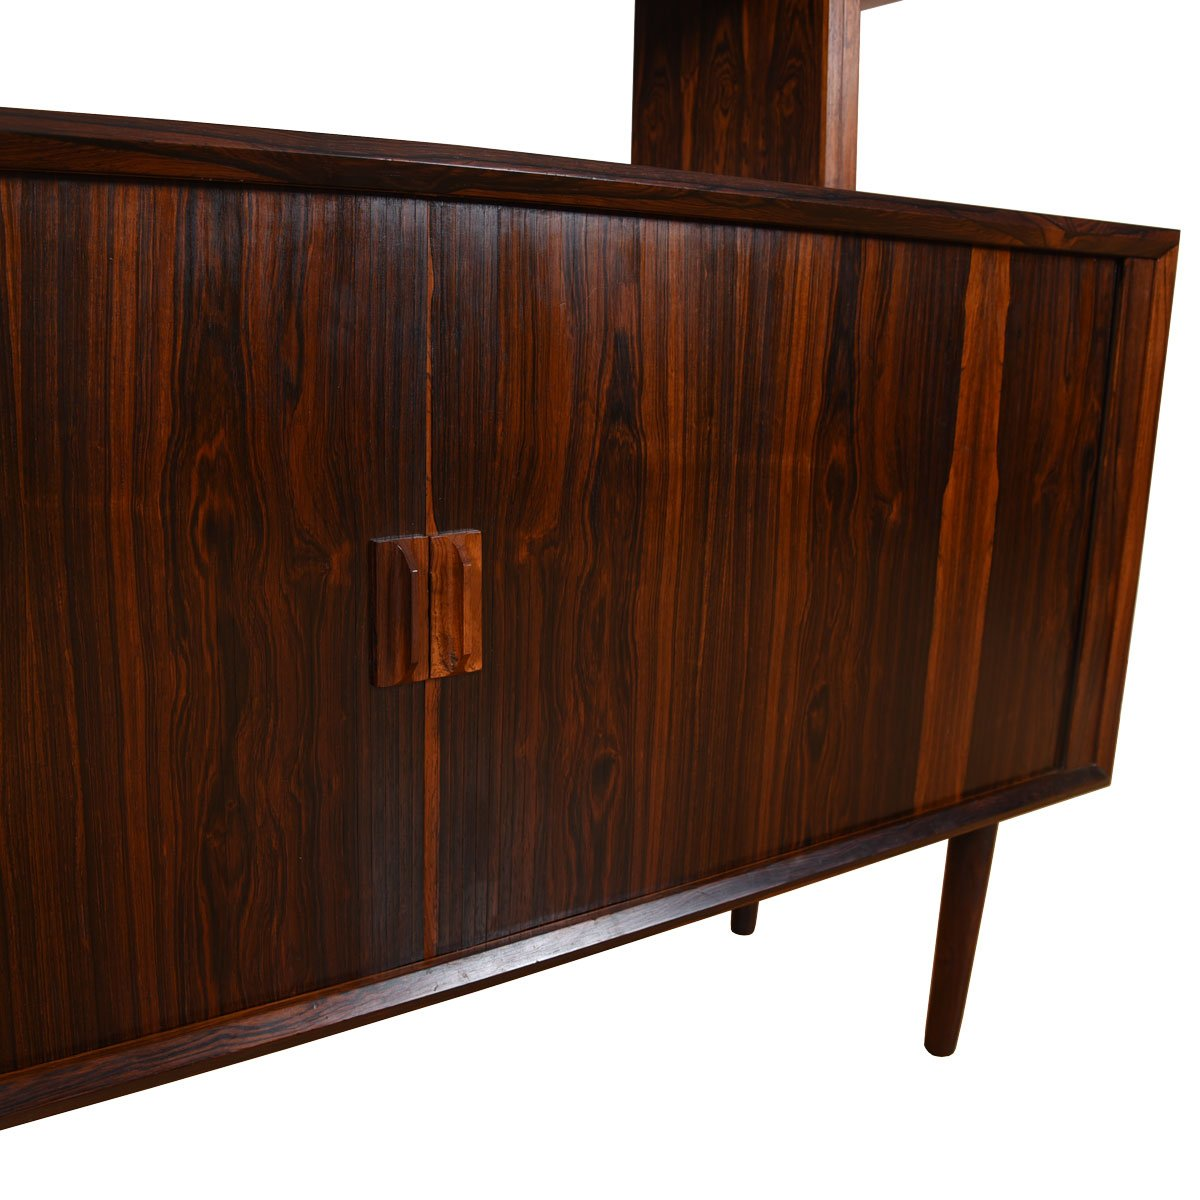 Gorgeous Room Divider / Danish Rosewood Tambour Door 2-Piece Sideboard.